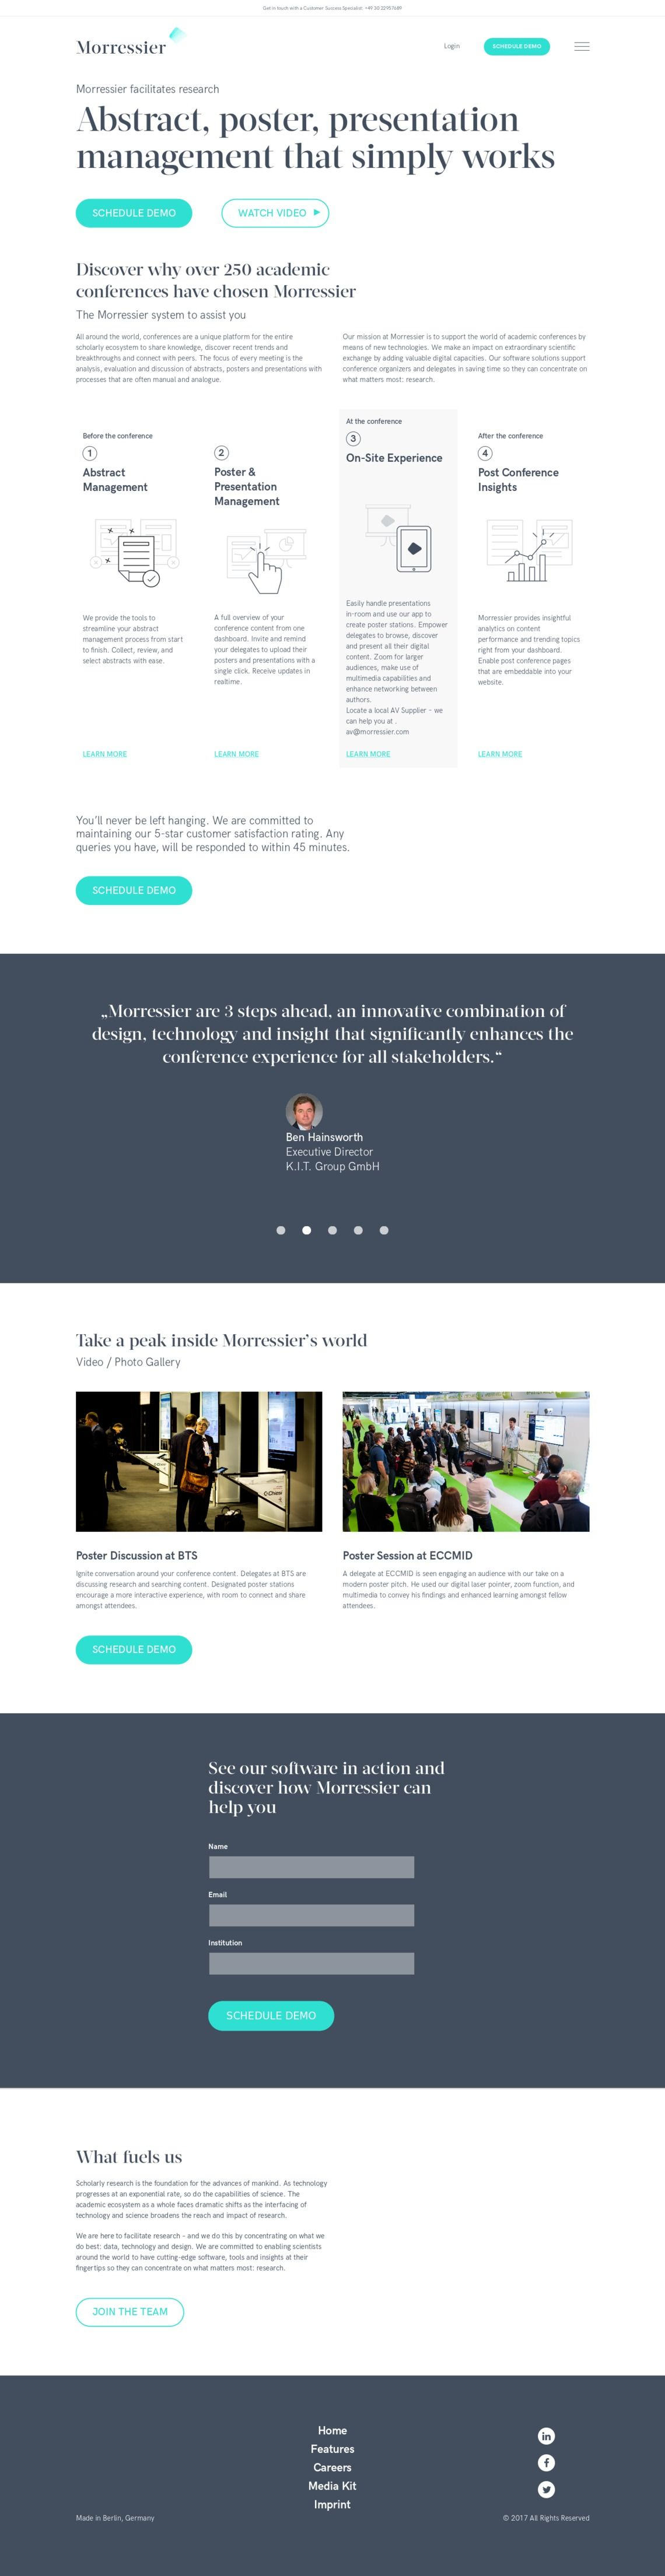 Abstract Poster And Presentation Management For Academic Conferences Presentation Architecture Poster Architecture Presentation